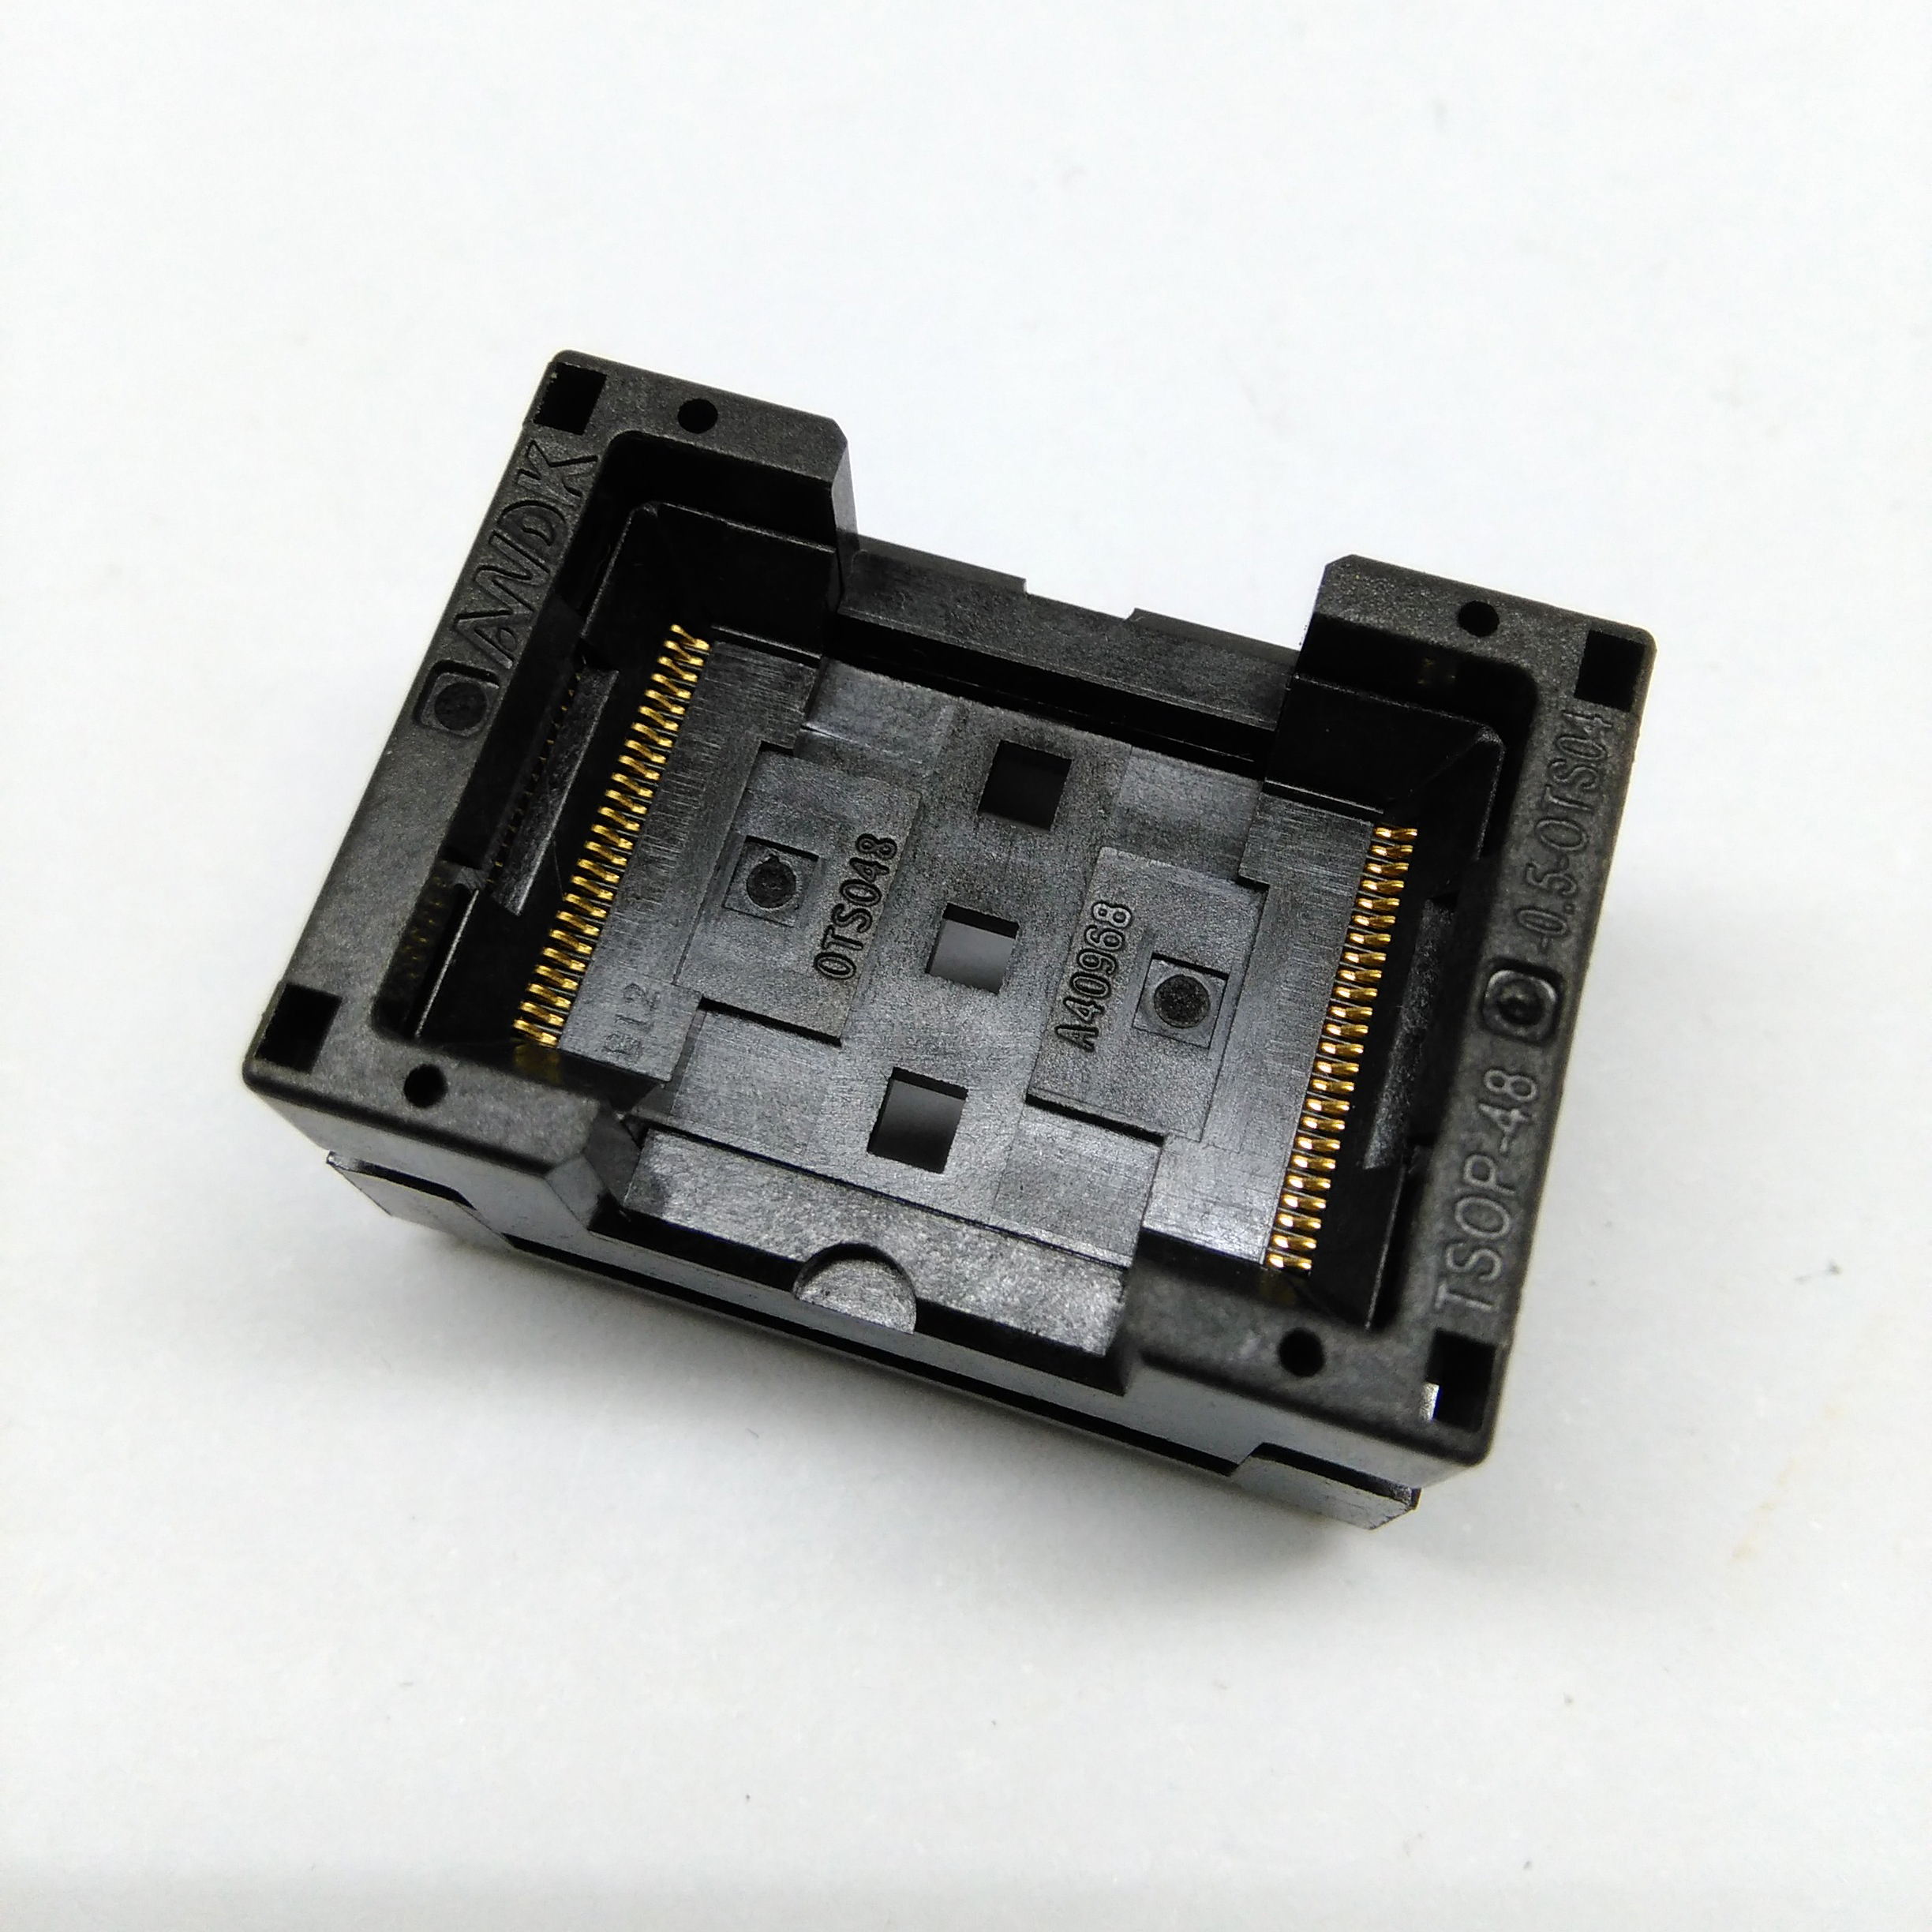 TSOP48-0.5-12X18.4 Open Top Burn in Socket IC Test Socket Standard tsop48 IC354-048-D31/35P Programmer Adapter Wholesale